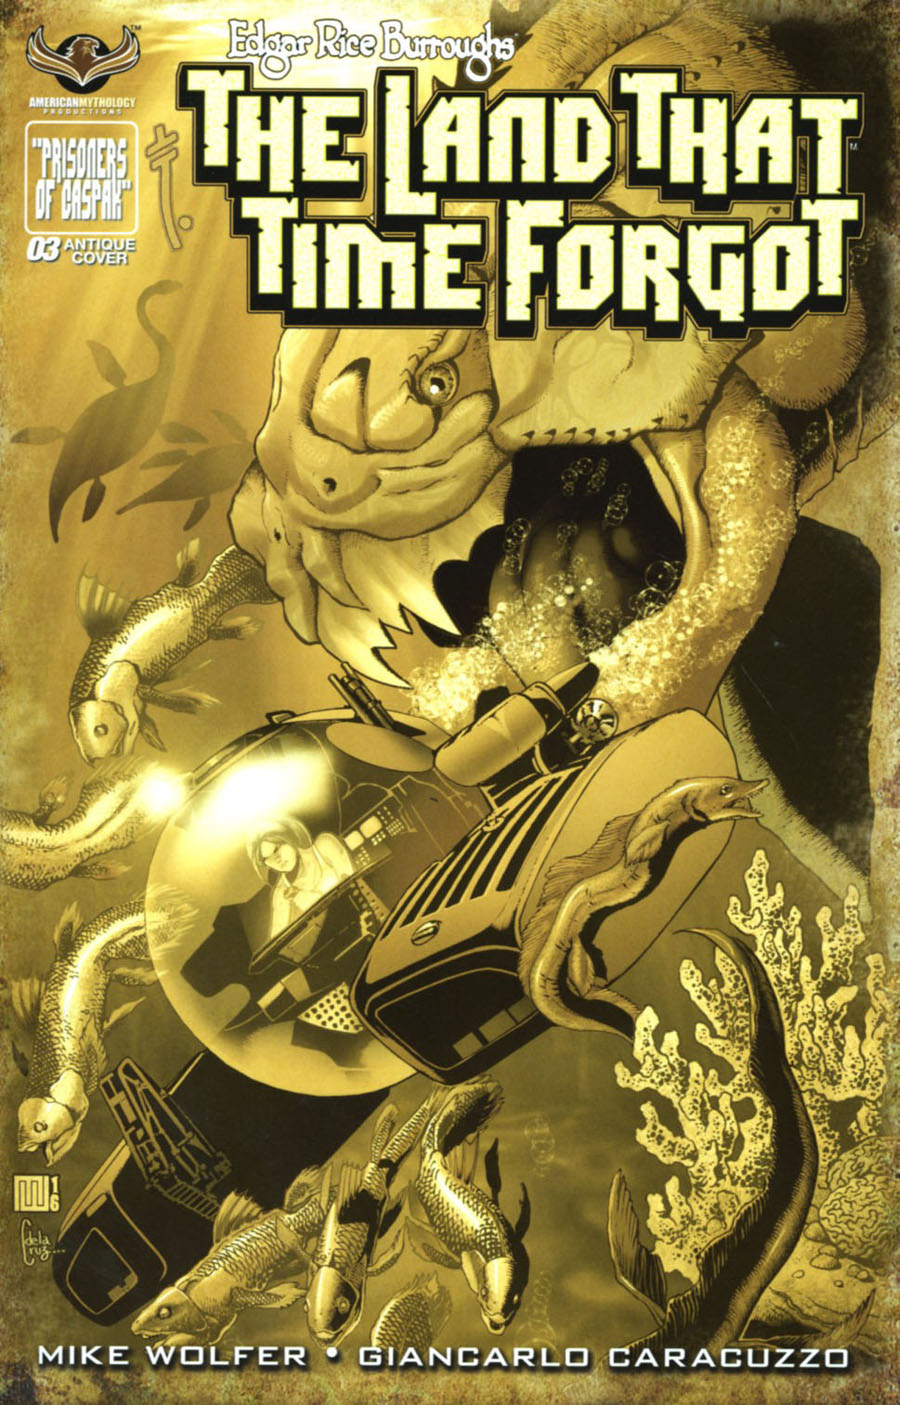 Edgar Rice Burroughs Land That Time Forgot #3 Cover C Incentive Turn Of The Century Variant Cover